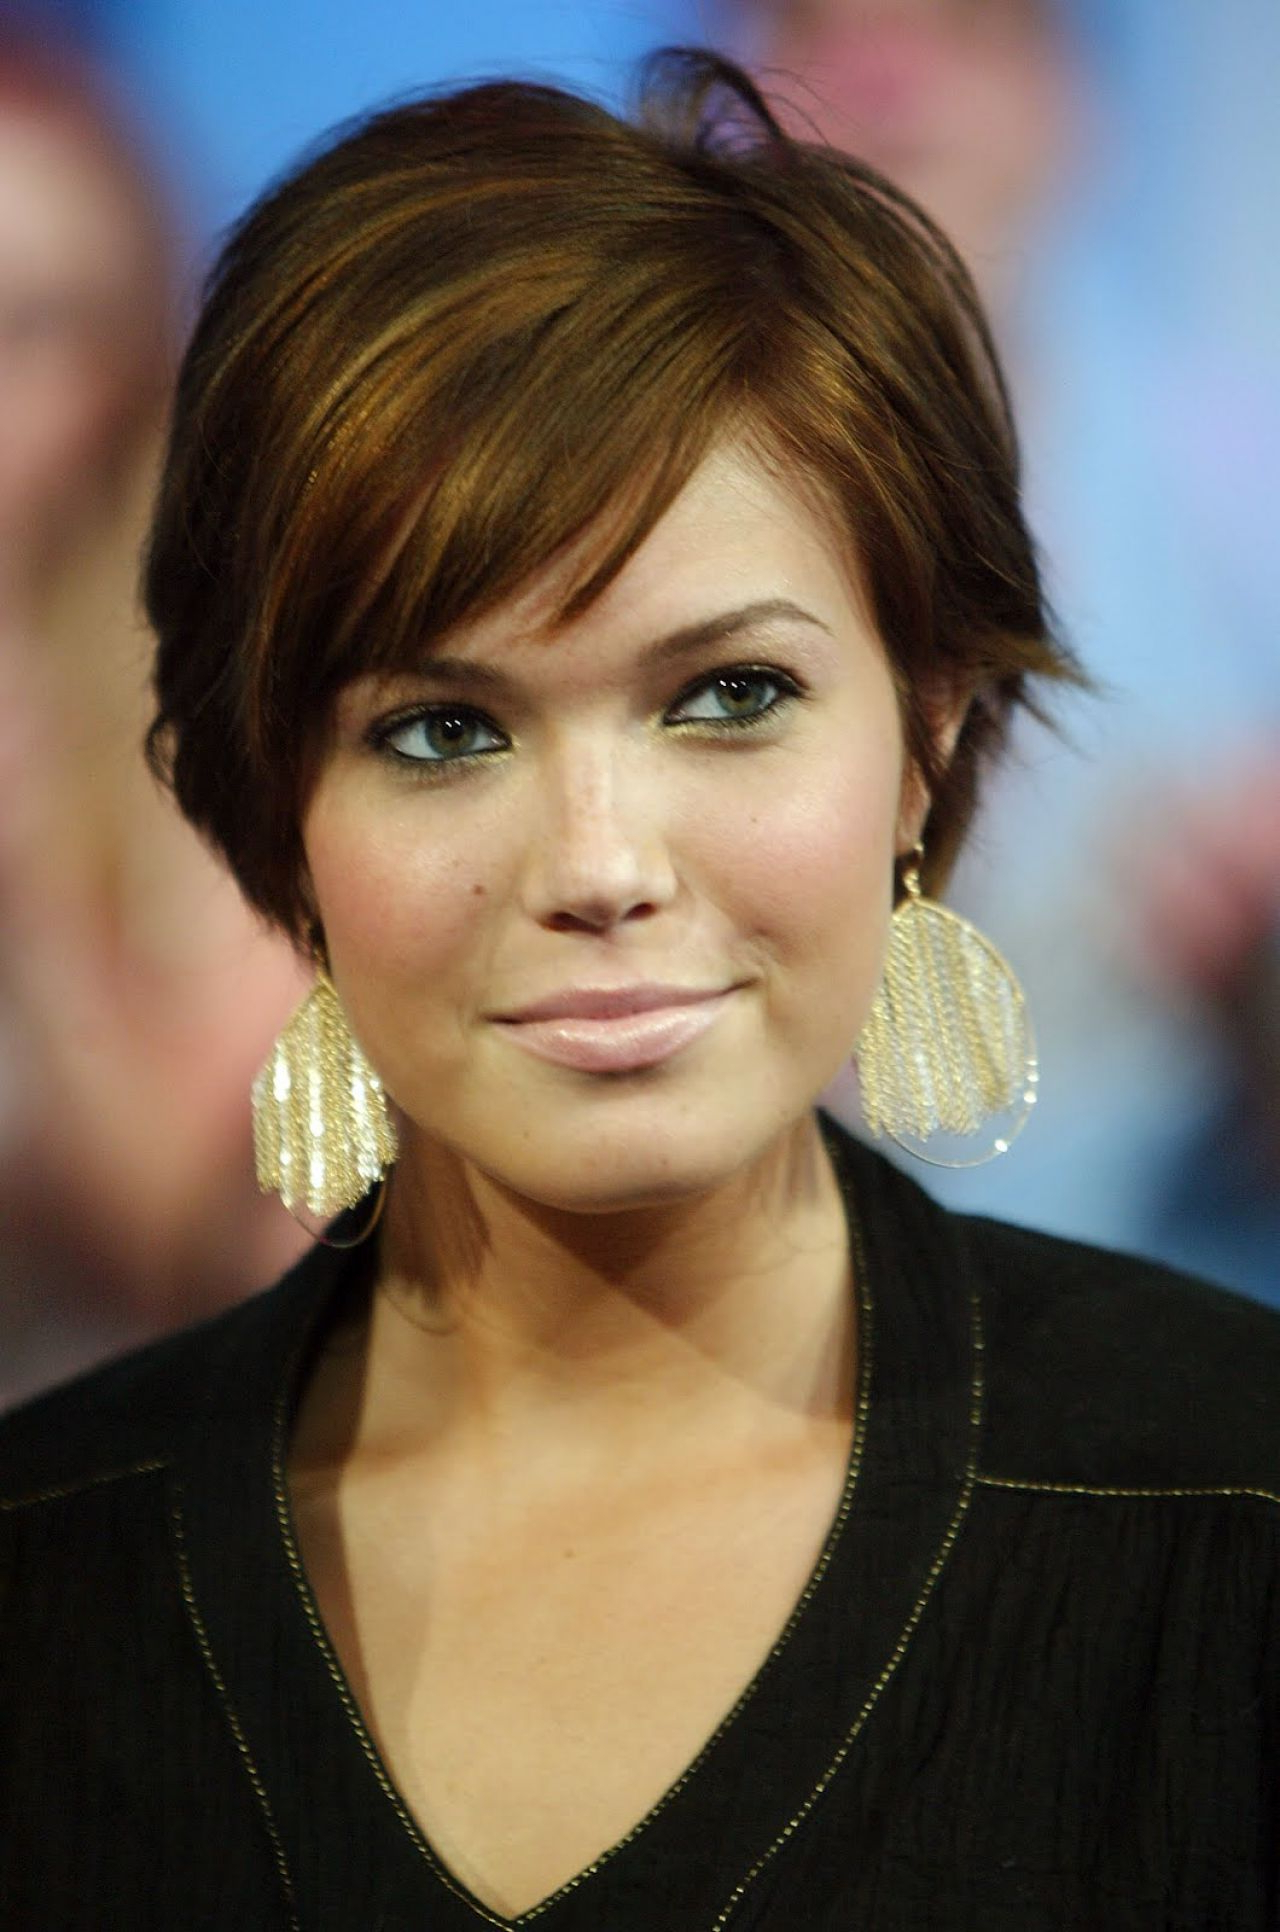 Short Hairstyles For Square Faces Female – Google Search With Regard To Short Hairstyles For Square Faces And Thick Hair (View 4 of 25)